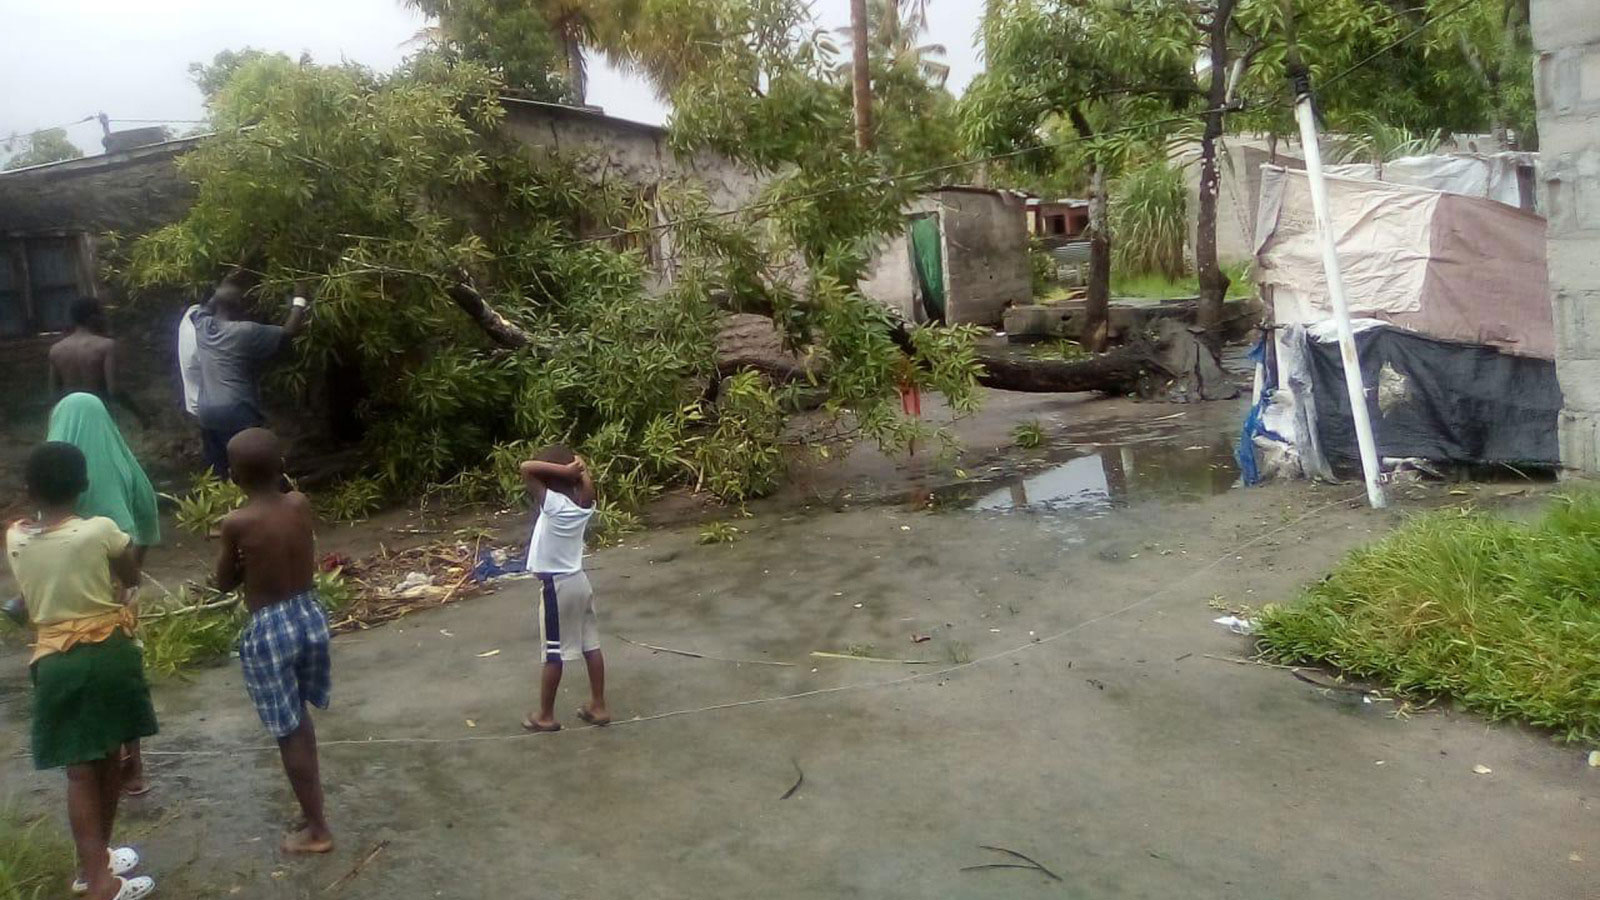 Mozambicans-in-Beira-survey-damage-following-Cyclone-Idai-in-March-2019